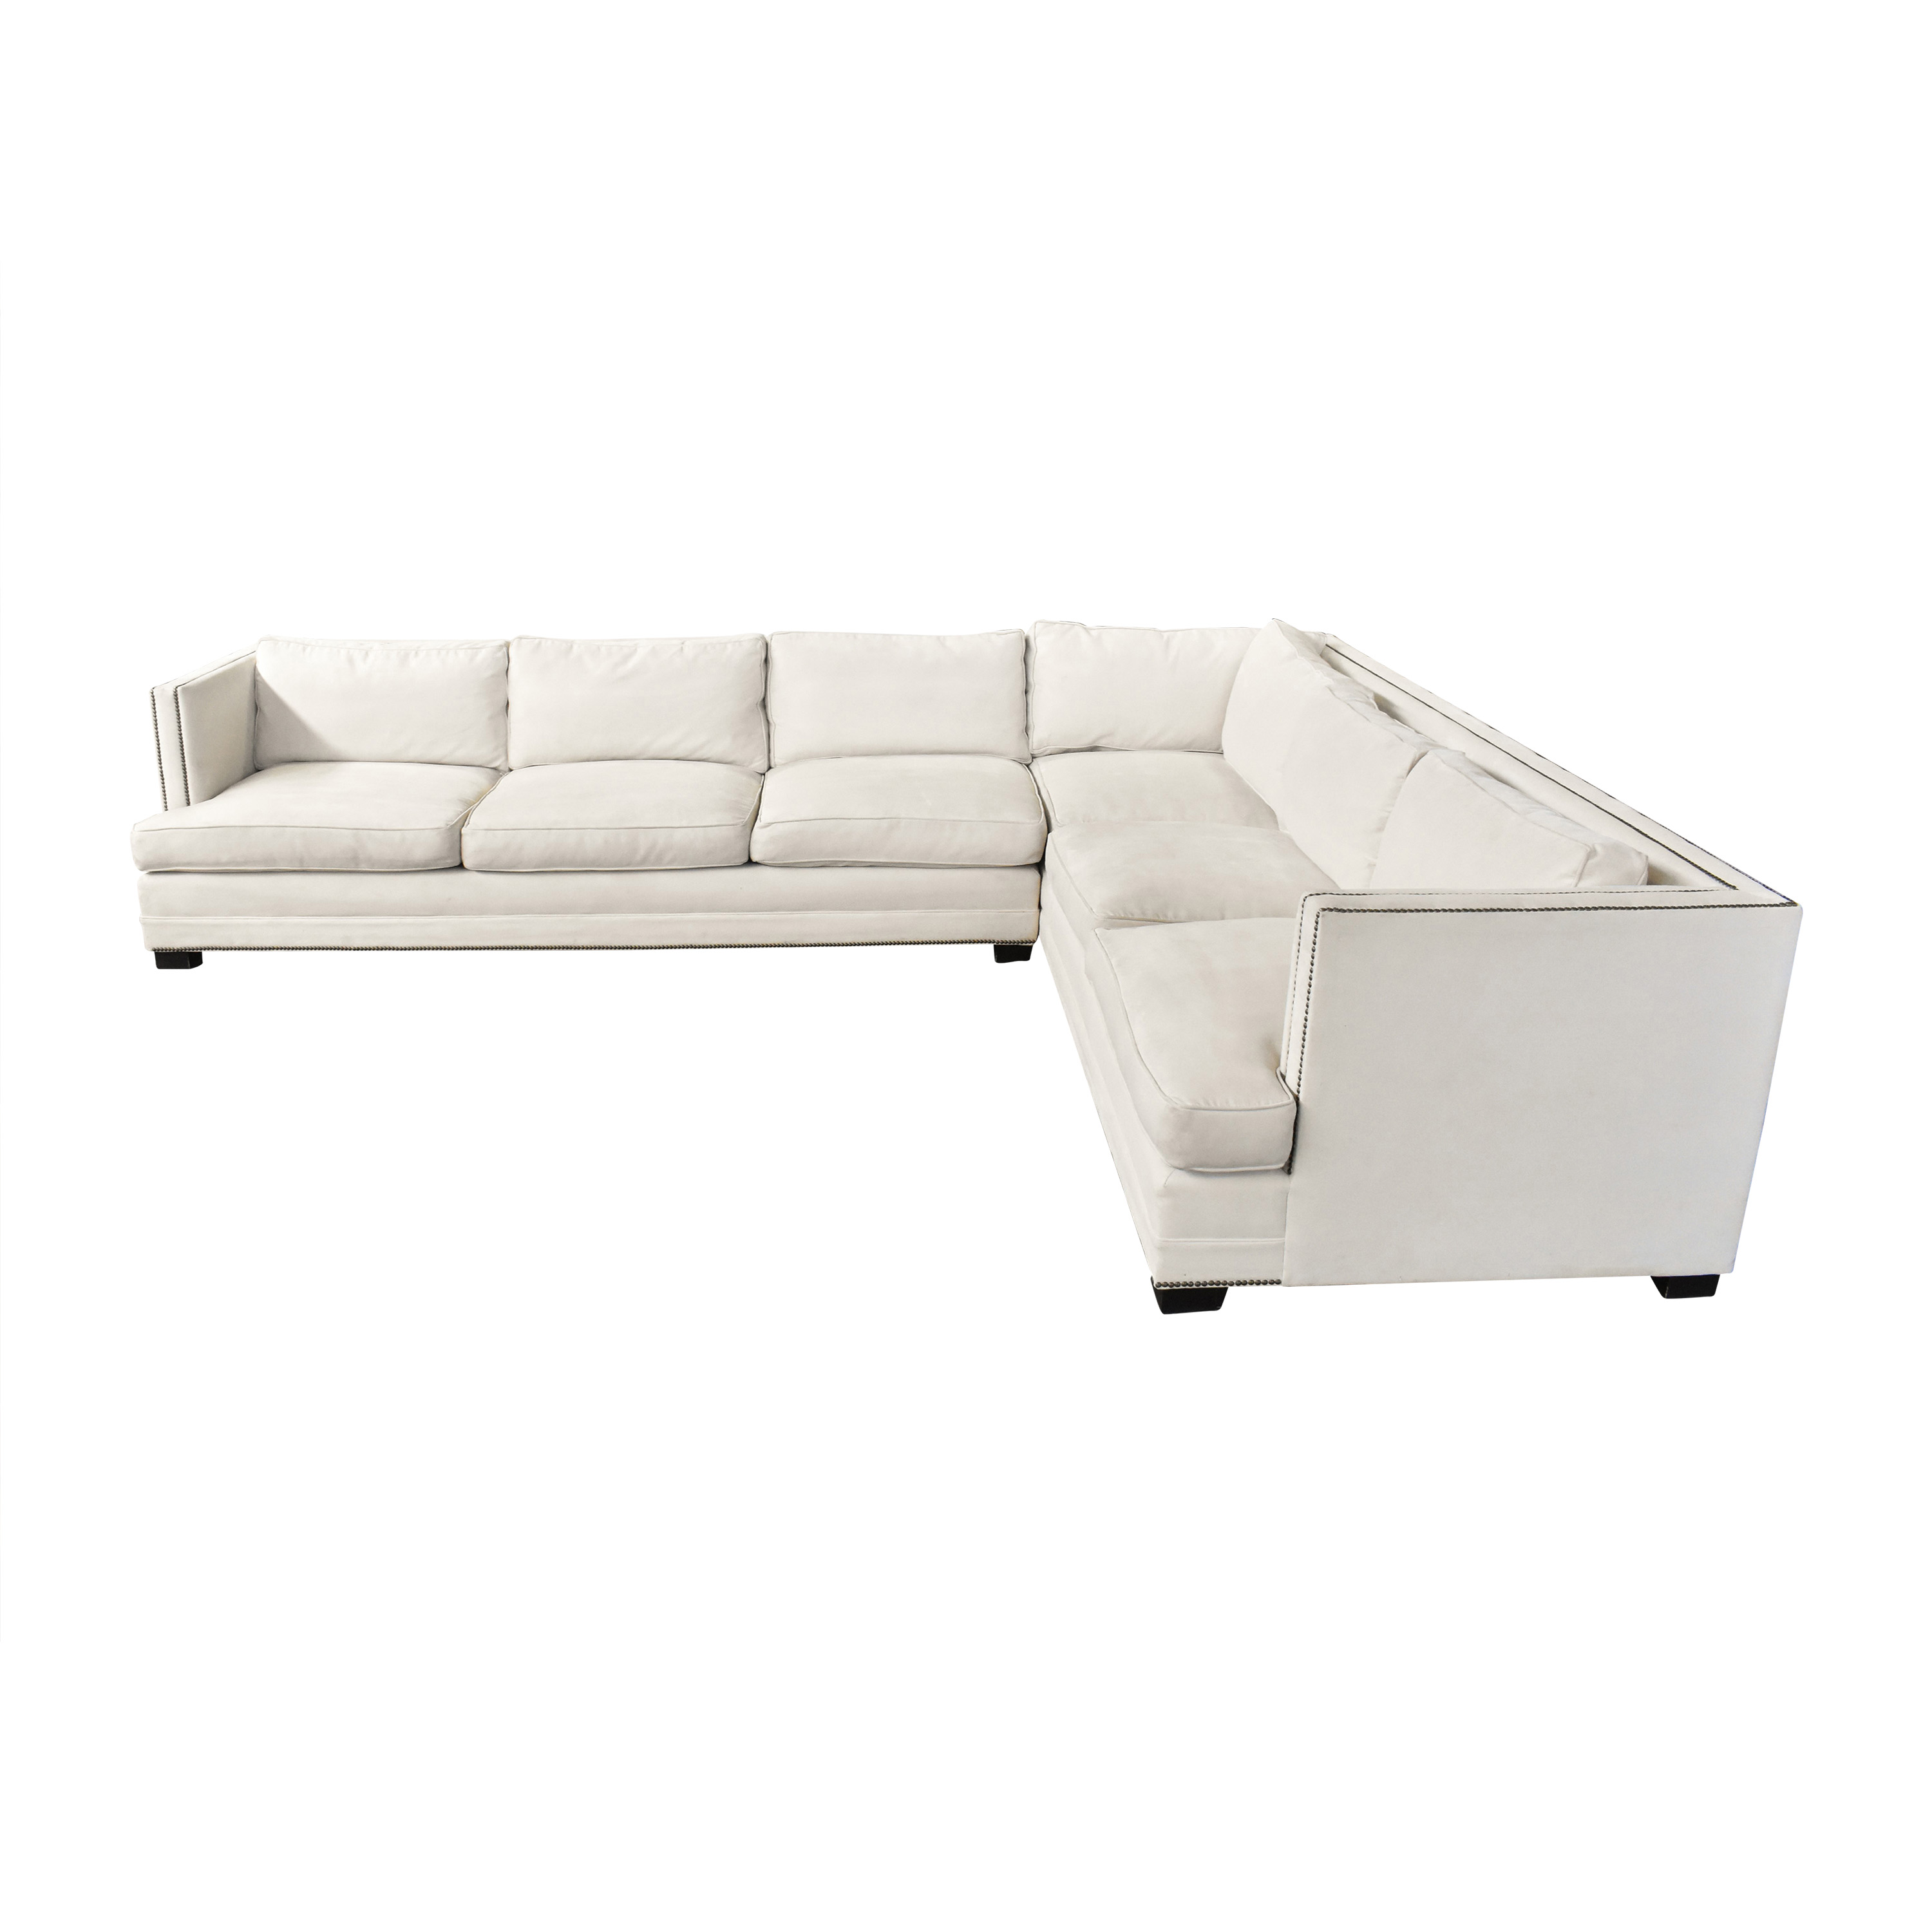 Restoration Hardware Restoration Hardware Keaton Sectional Sofa by Mitchell Gold + Bob Williams pa